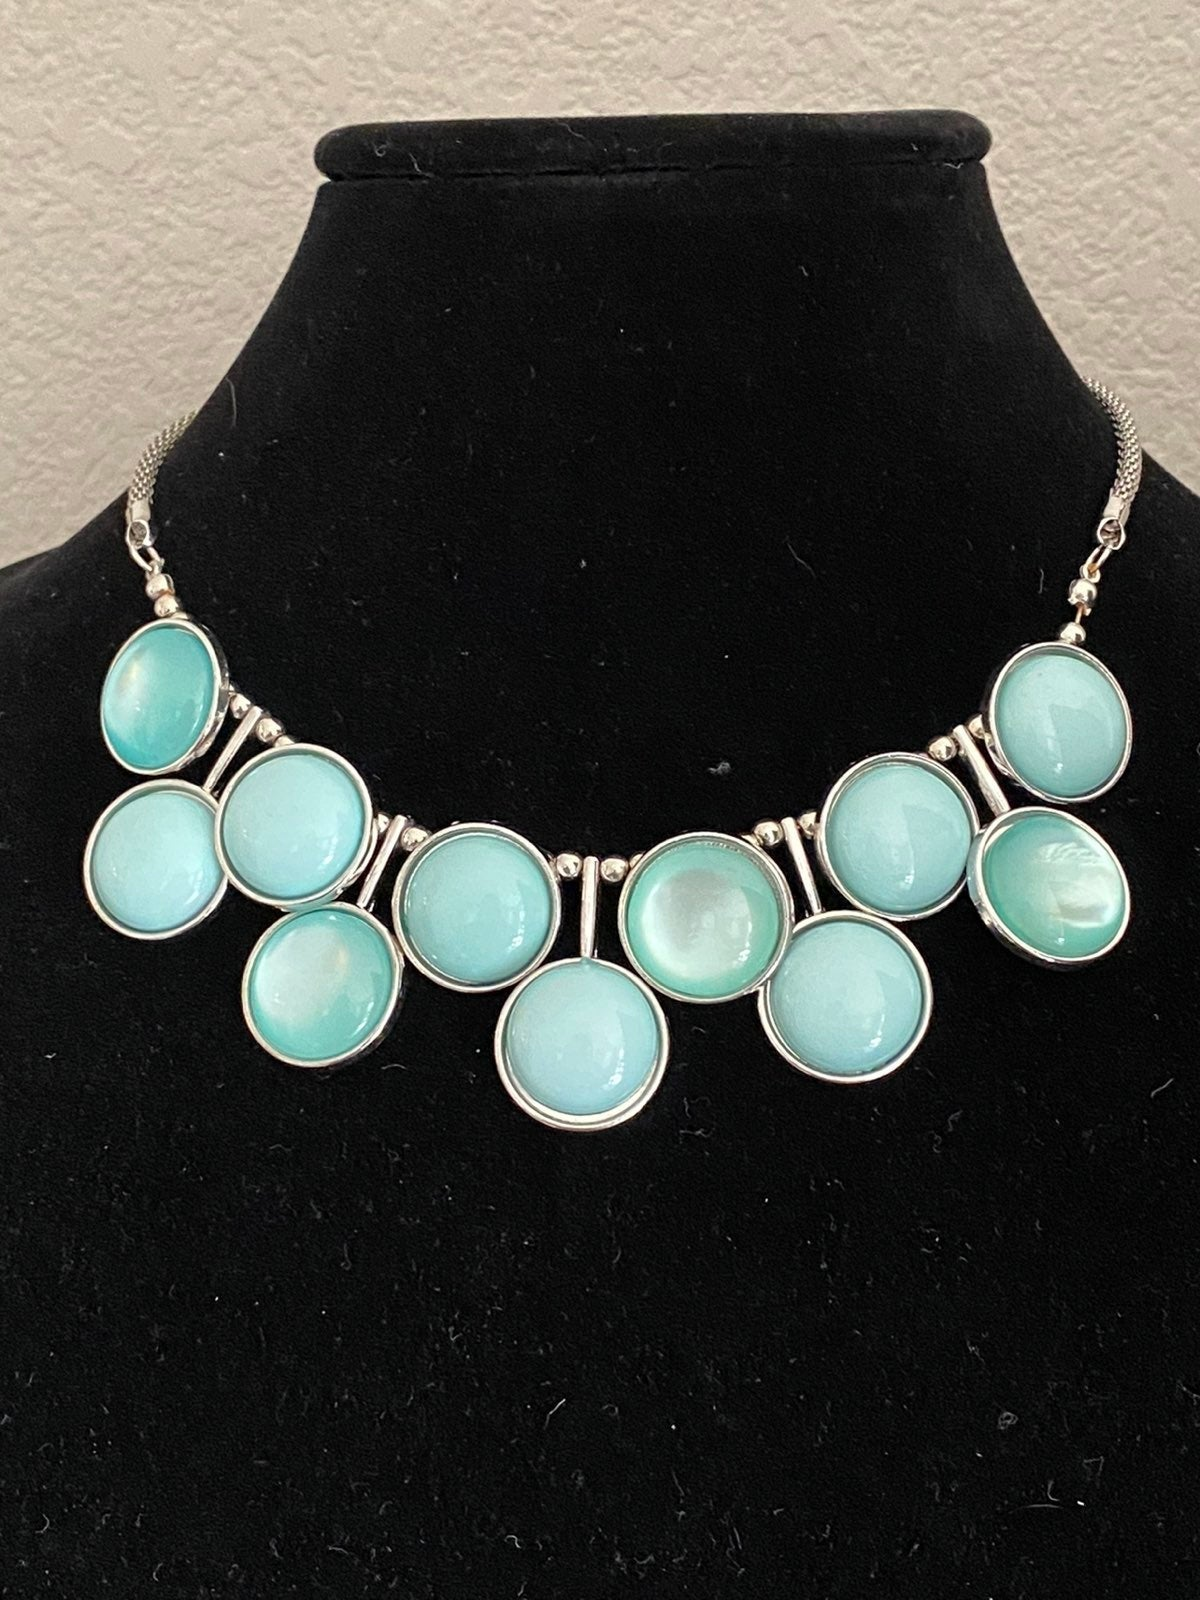 Charming Charlie Necklace Blue